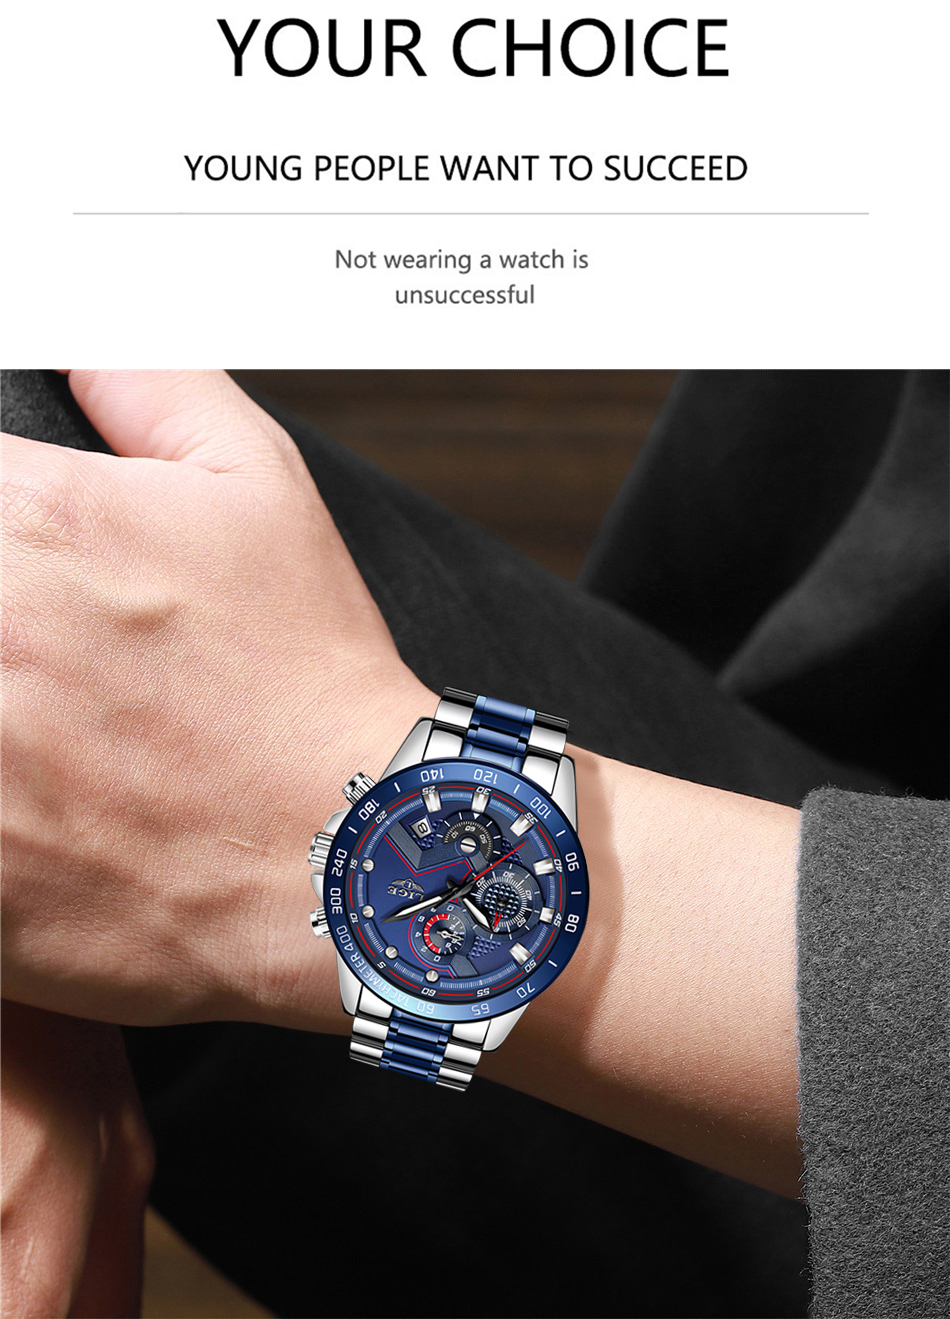 H6cfc21967b0e46dca53a4ed23ba8277ar Relogio Masculino LIGE Hot Fashion Mens Watches Top Brand Luxury Wrist Watch Quartz Clock Blue Watch Men Waterproof Chronograph